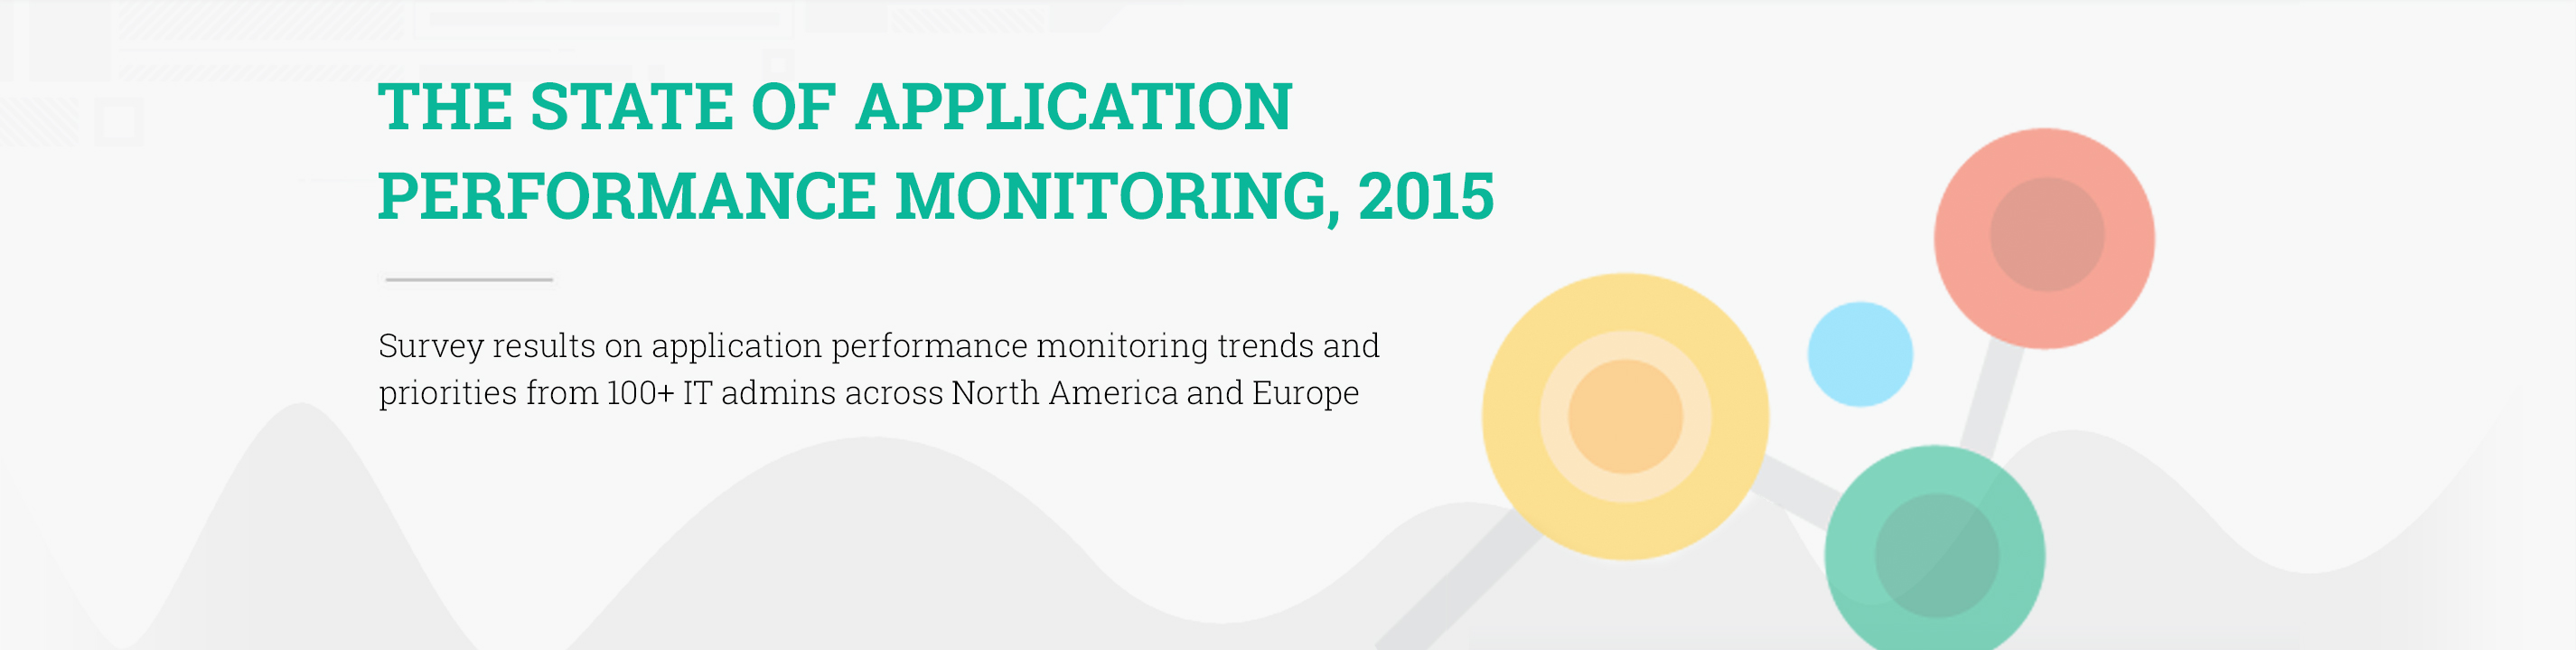 The State Of Application Performance Monitoring 2015